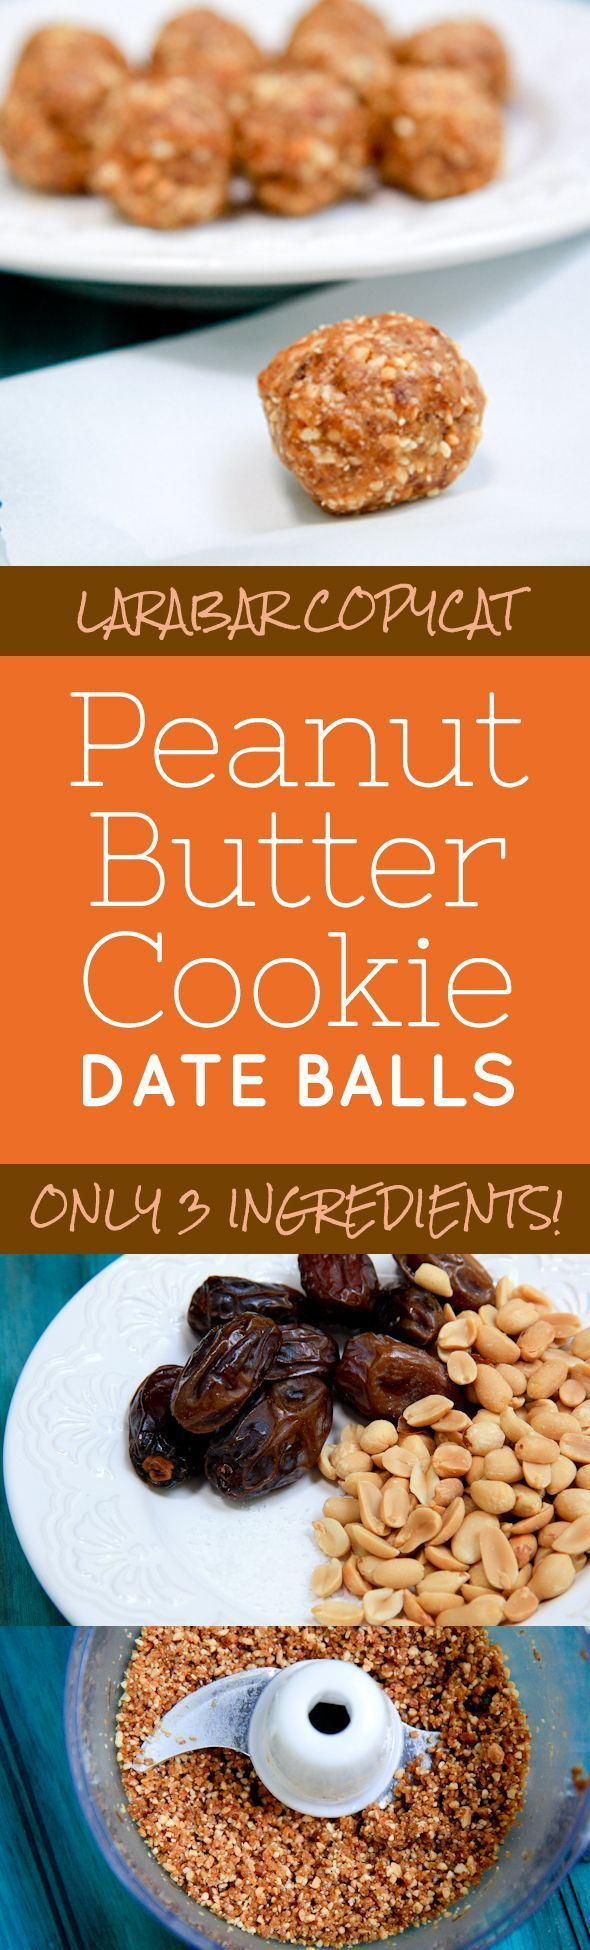 LARABAR Copycat Peanut Butter Cookie Date Balls: These are the perfect snack for a little late-afternoon pick-me-up. They also have just the right amount of carbs, fat, protein and calories to be a good pre-workout snack.  5 minute prep time and only 3 ingredients! Easy, Healthy & So Delicious (one of my most favorite recipes!)  Back To Her Roots